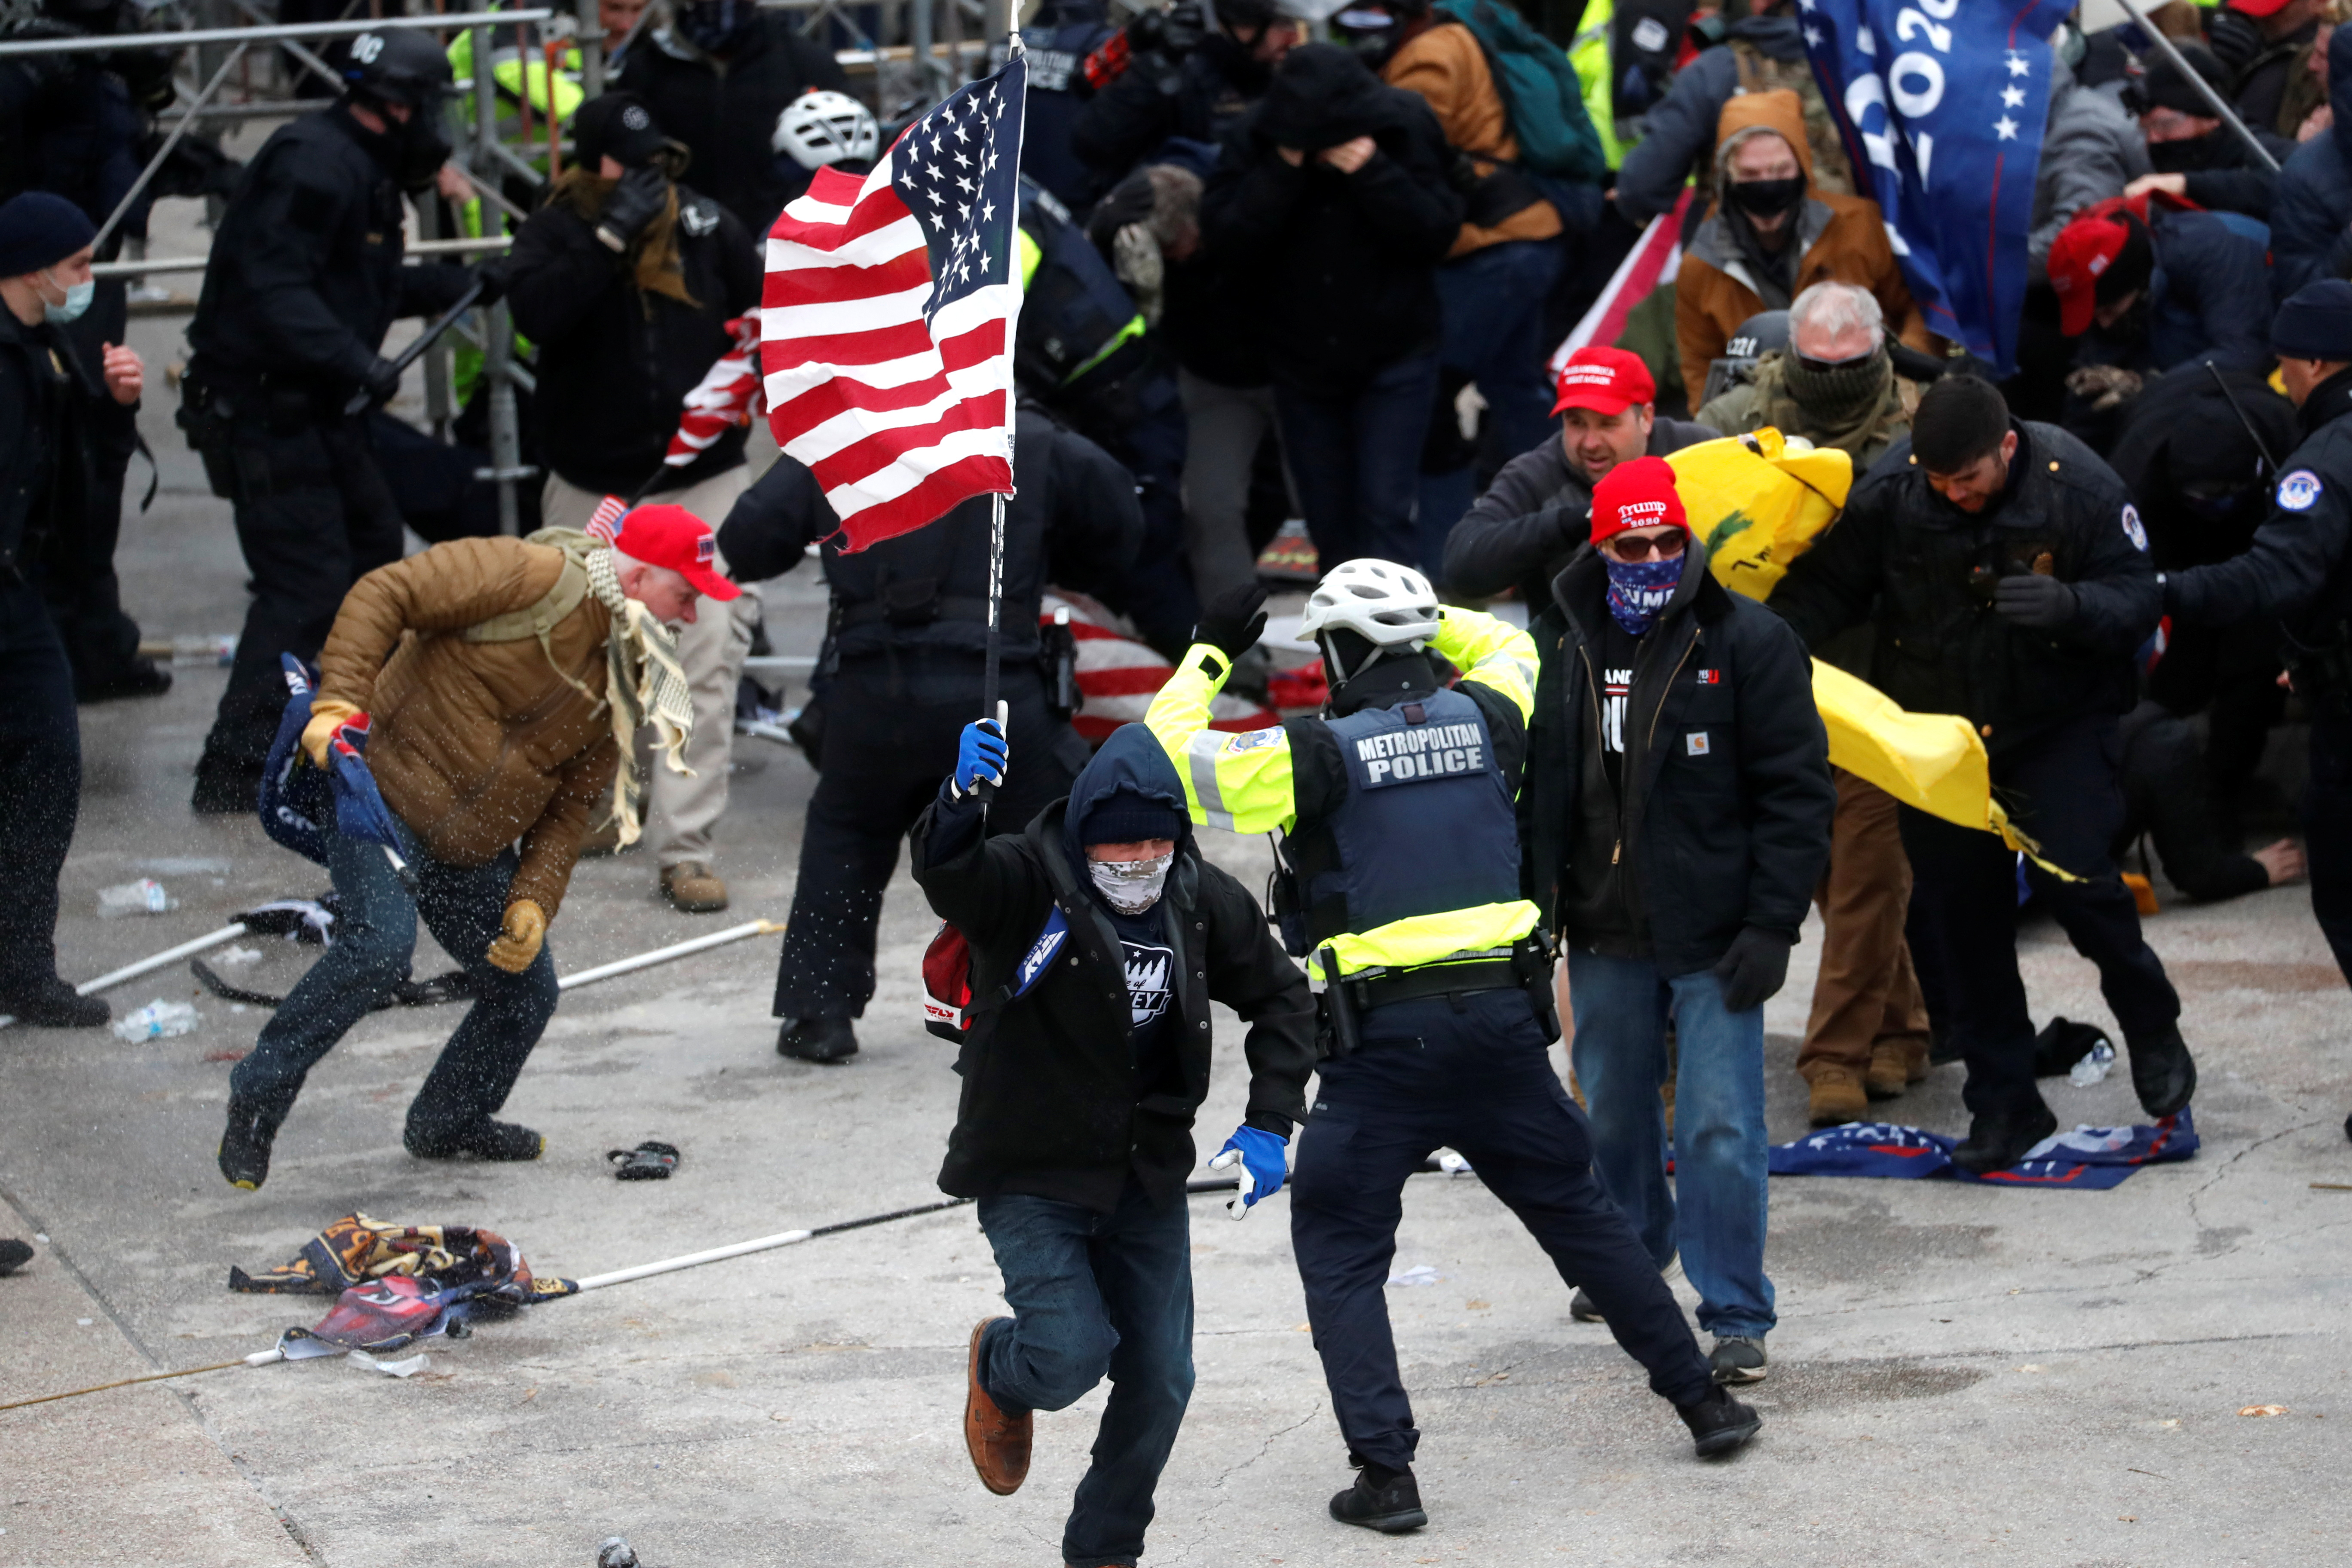 Pro-Trump protesters clash with Capitol police during a rally to contest the certification of the 2020 U.S. presidential election results by the U.S. Congress, at the U.S. Capitol Building in Washington, U.S, January 6, 2021. REUTERS/Shannon Stapleton